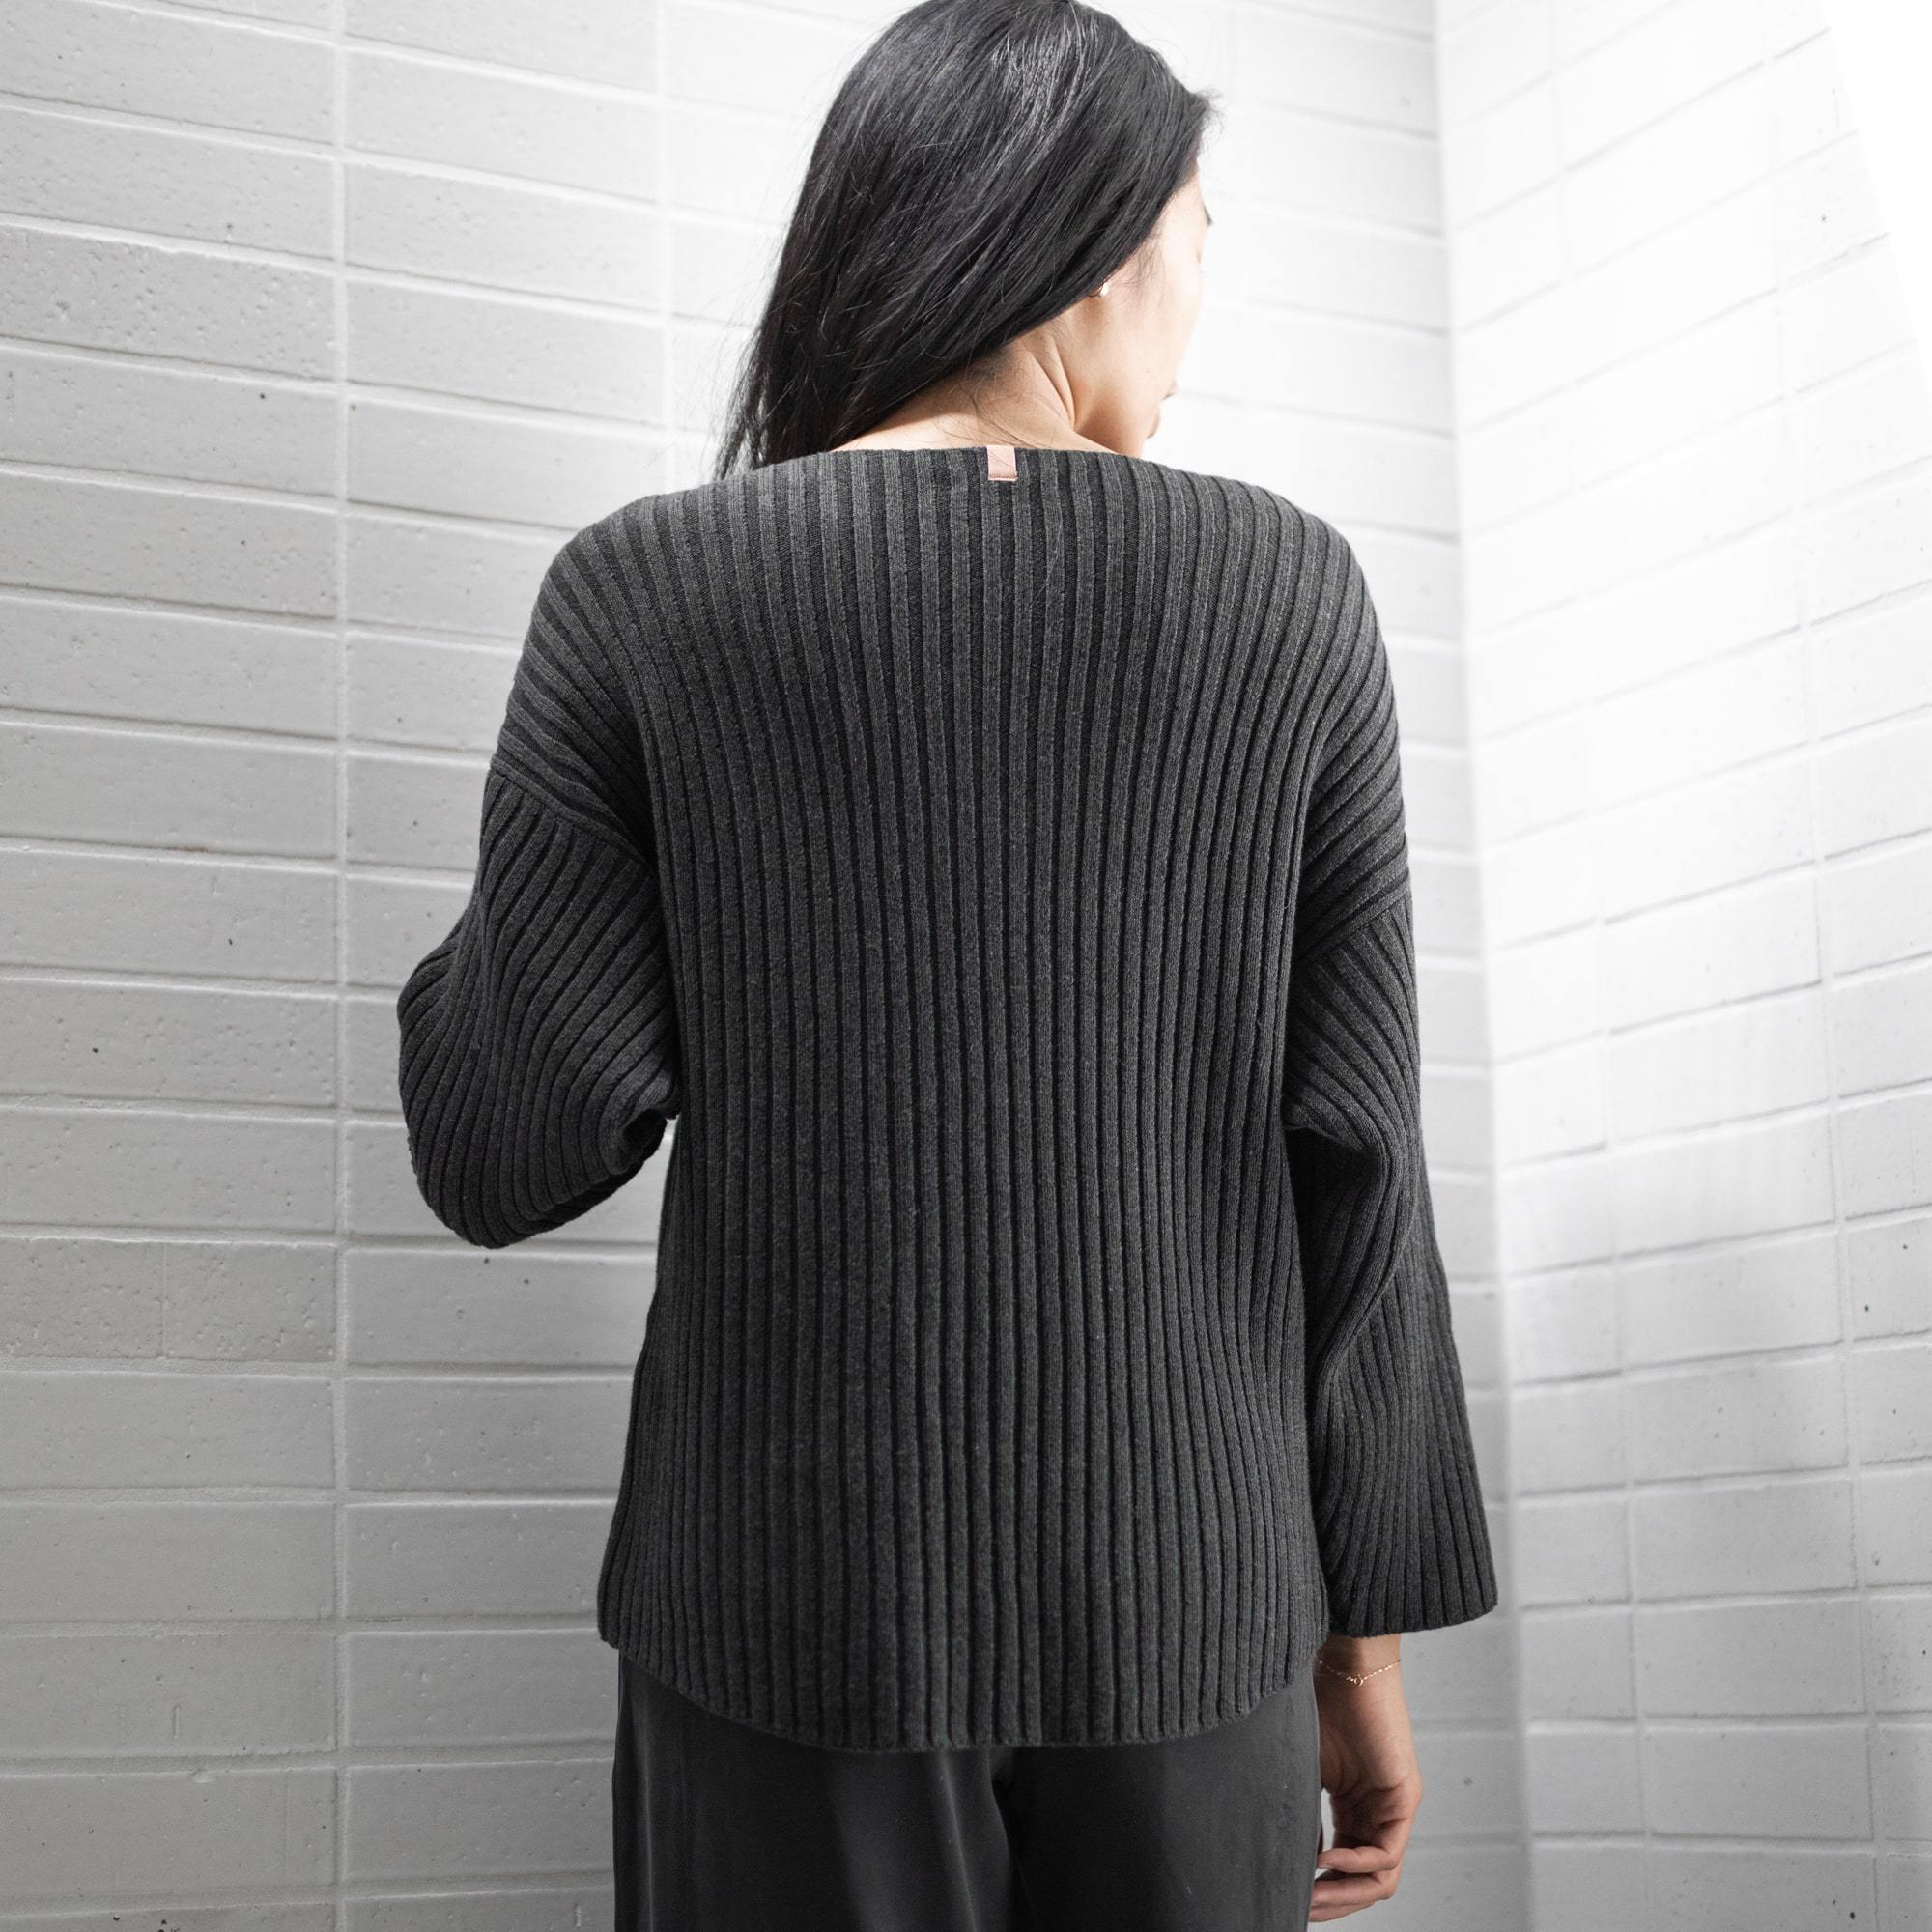 Lunya Sleepwear Cozy Pima Alpaca Ribbed Pullover - #Heather Charcoal